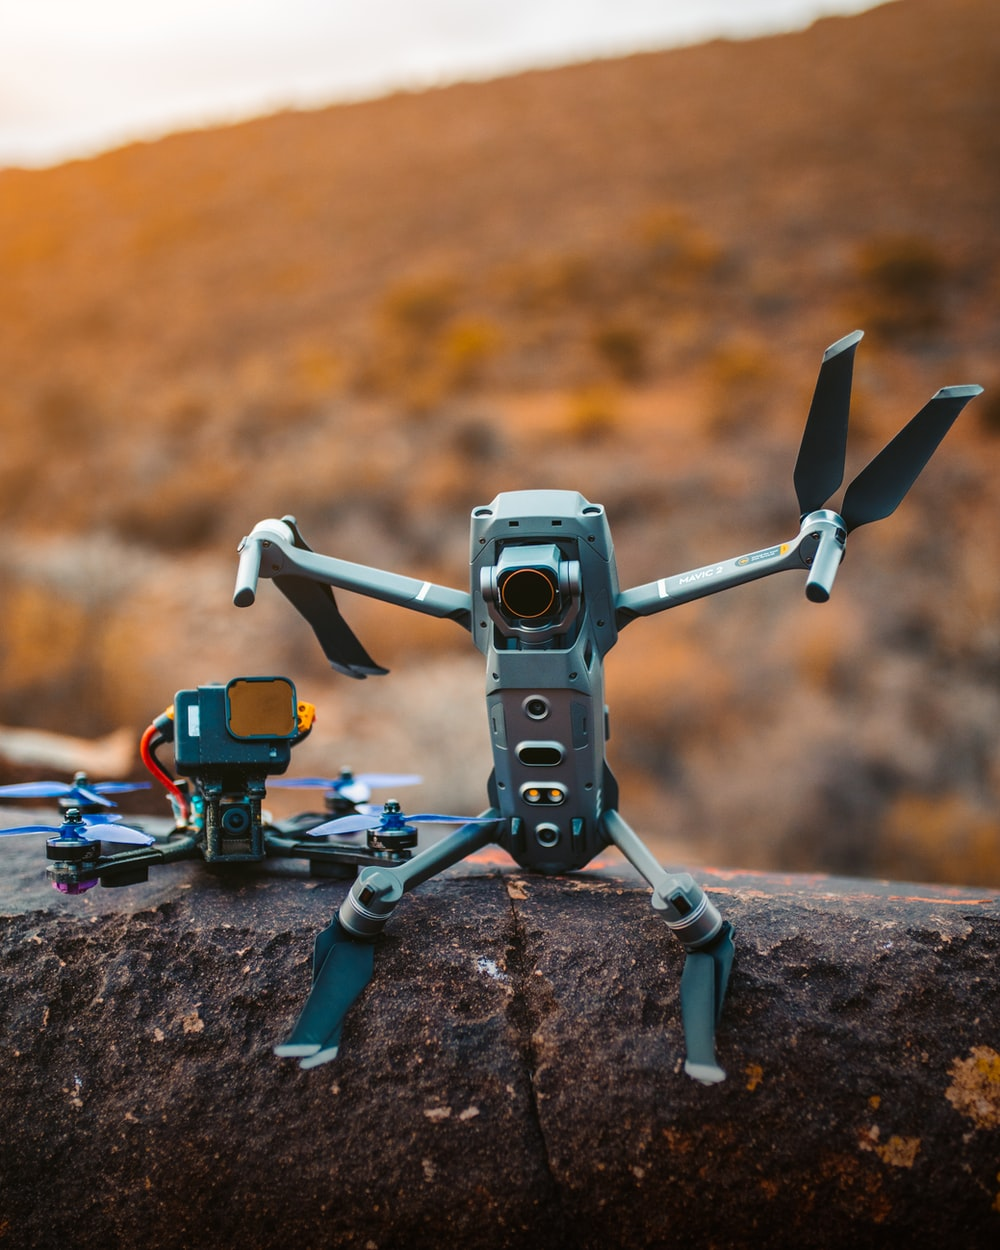 gray and black drone on brown rock during daytime